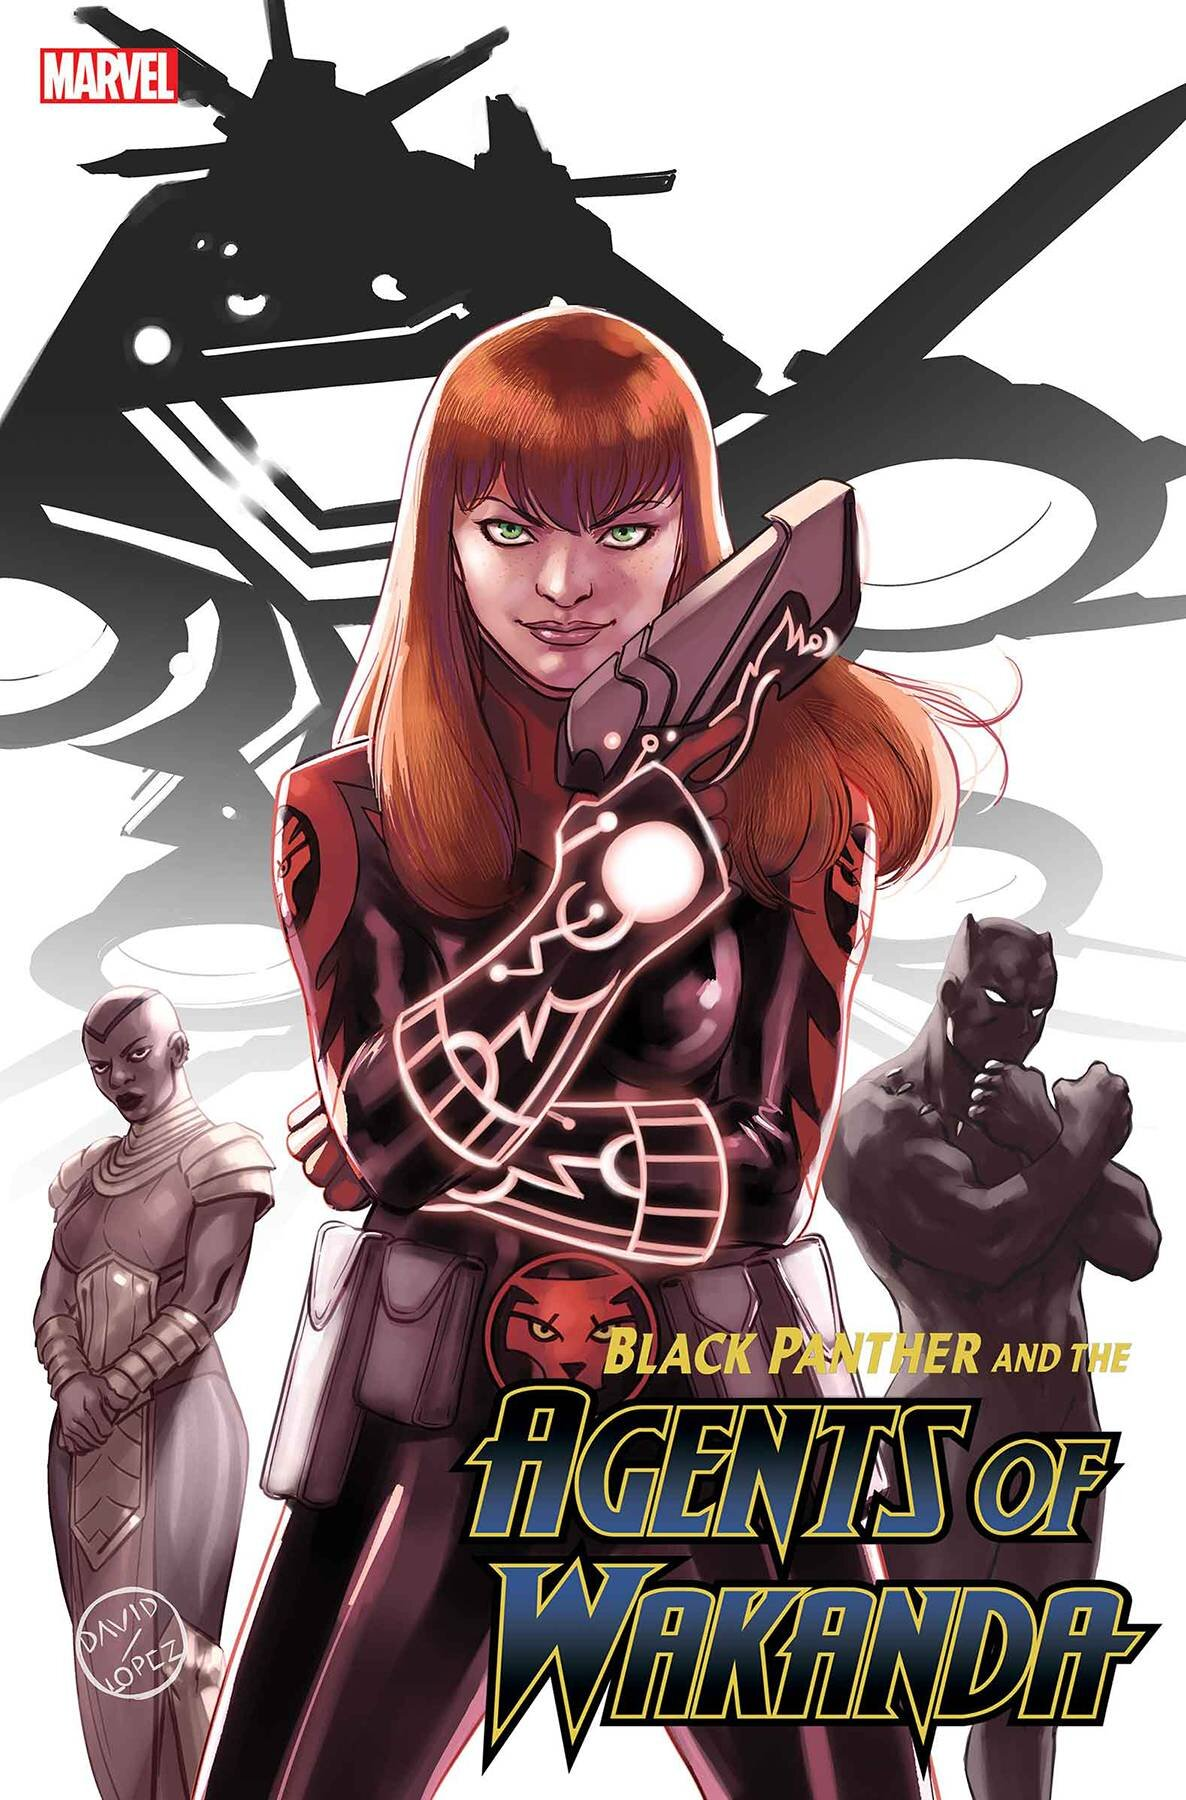 BLACK PANTHER AND AGENTS OF WAKANDA 2 LOPEZ MARY JANE VAR.jpg